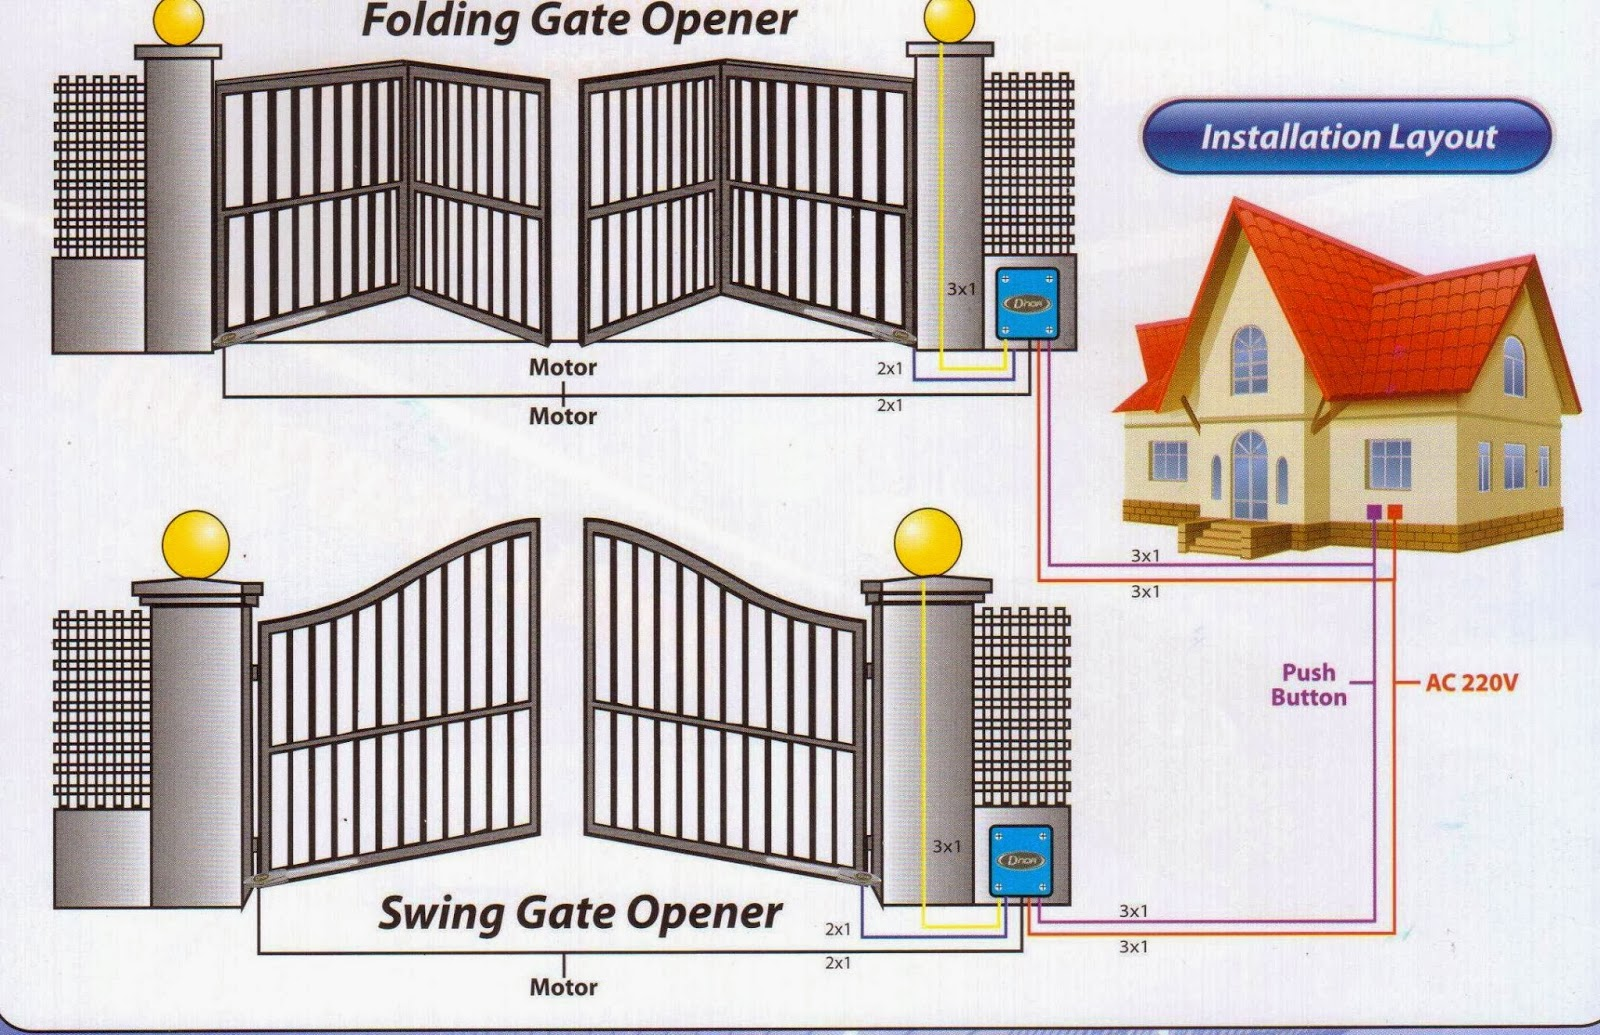 Swing Auto Gate Wiring Diagram 30 Images Autogate Malaysia Technical Support At